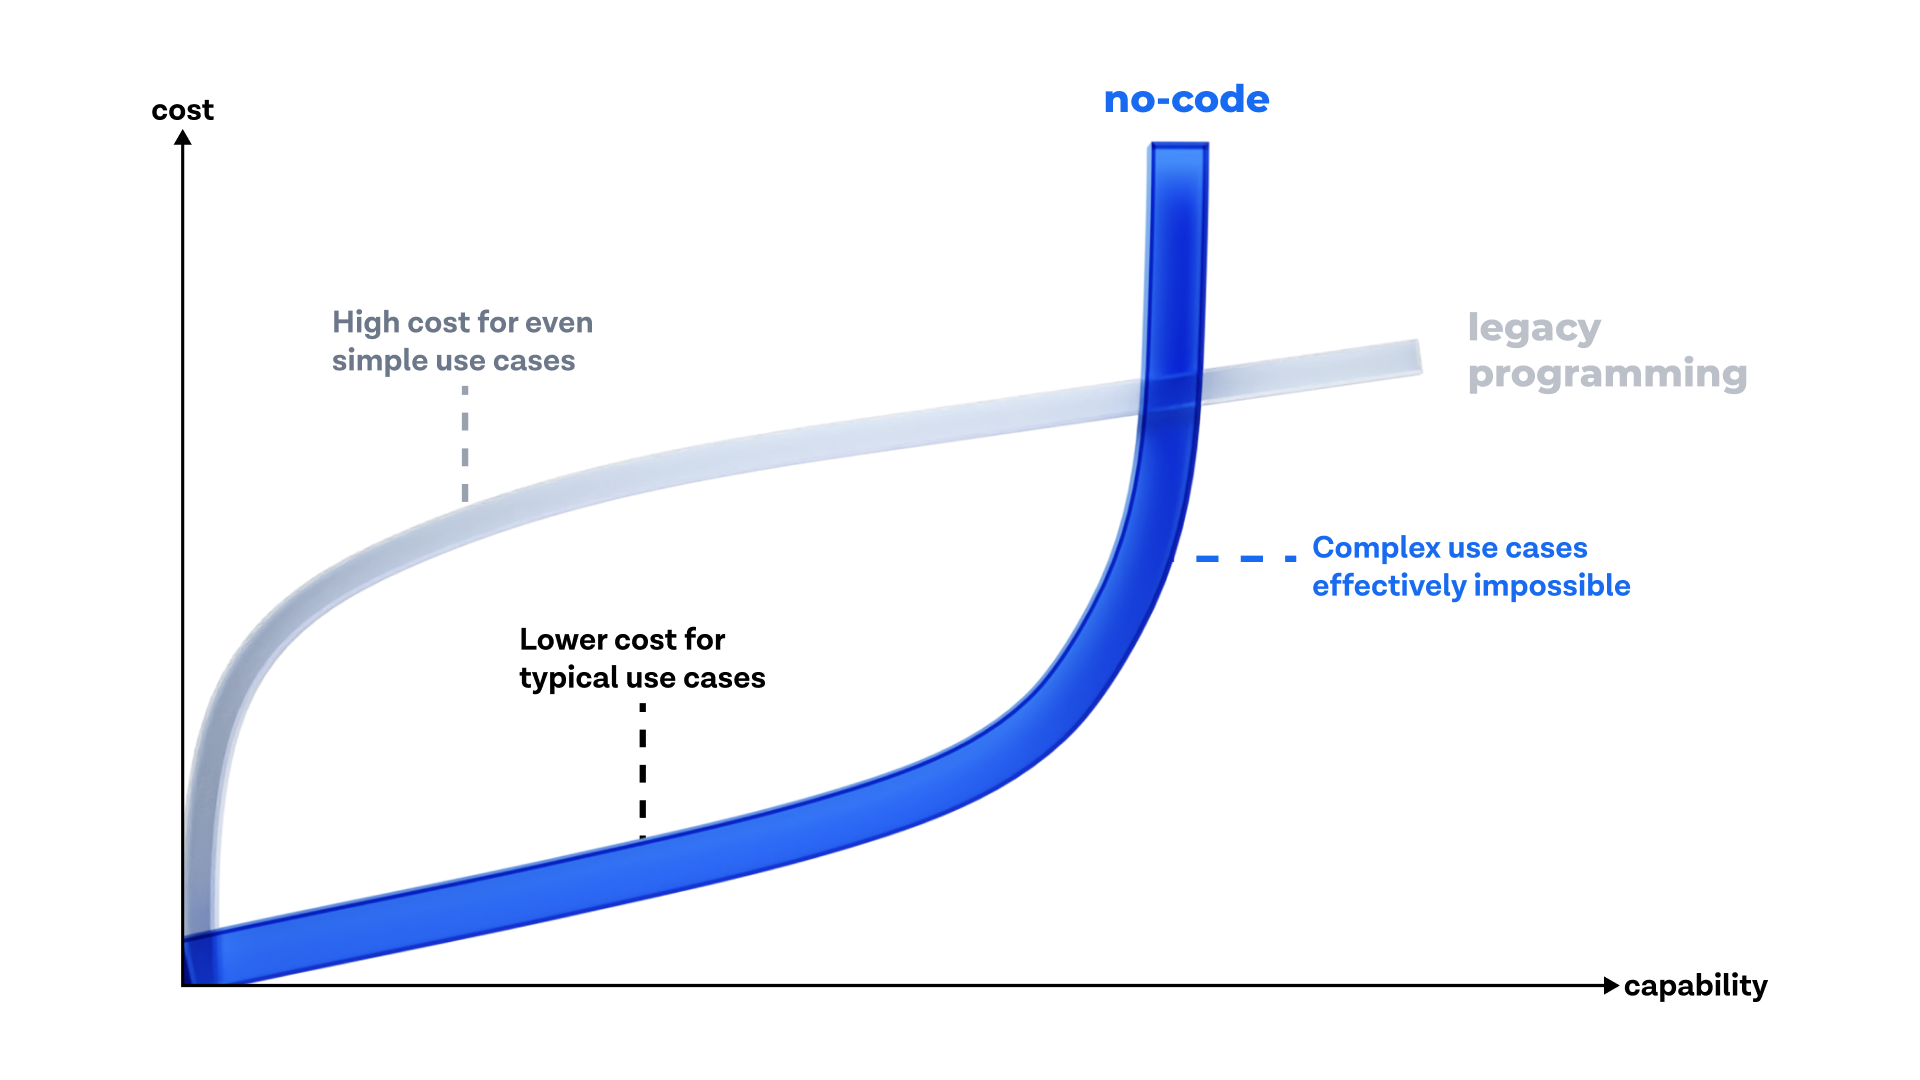 No-code delivers the same level of capabilities at a much lower cost